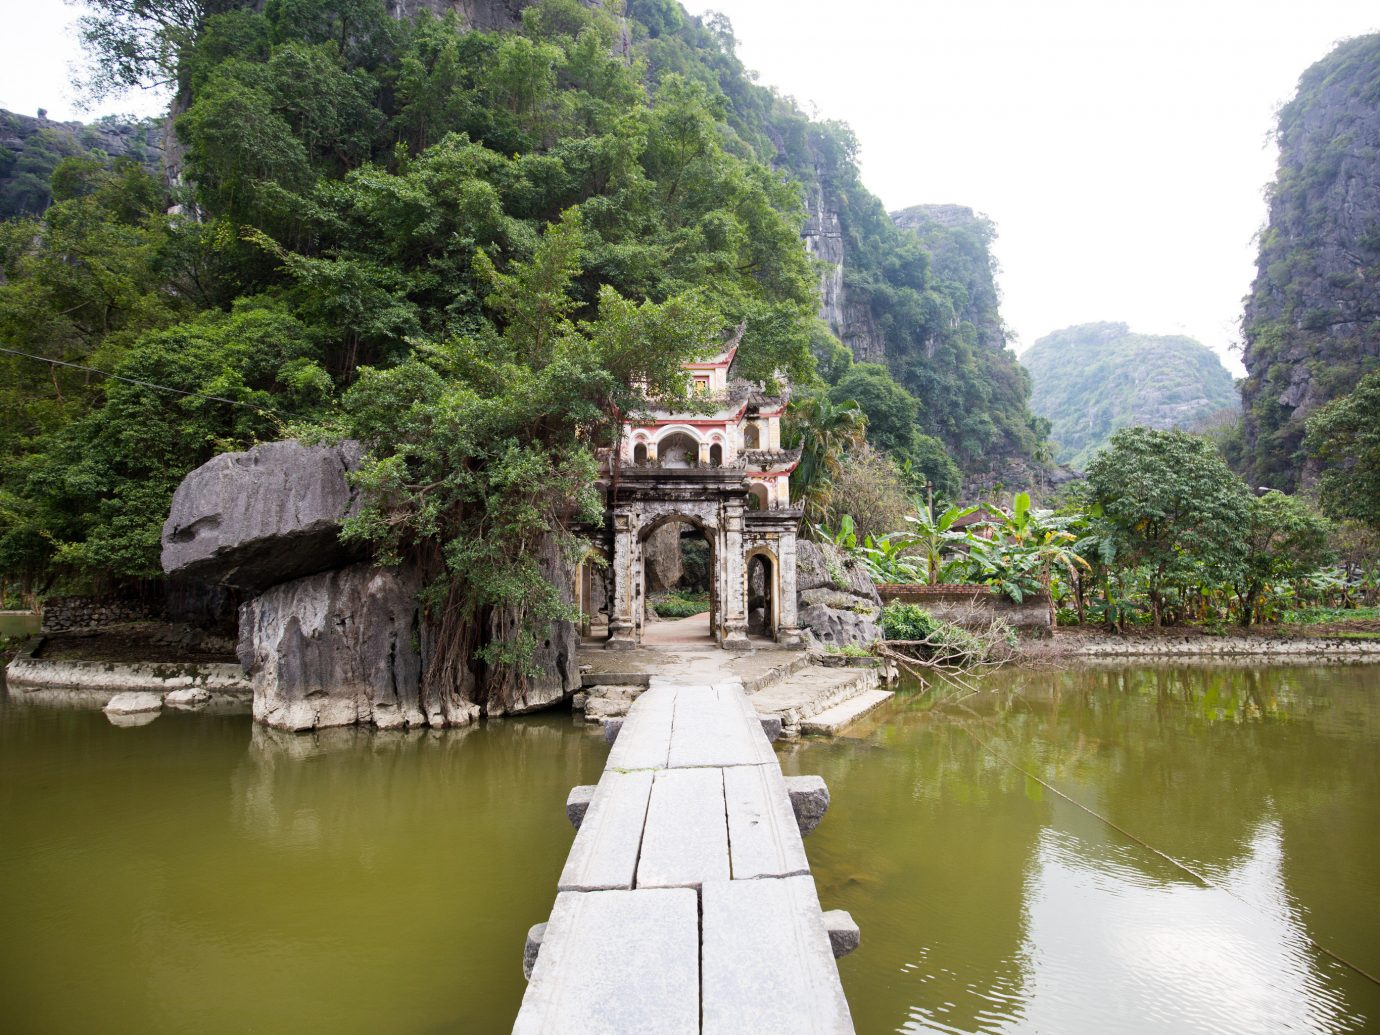 tree outdoor water River Nature Lake mountain tourism waterway temple reservoir place of worship Village pond surrounded traveling stone